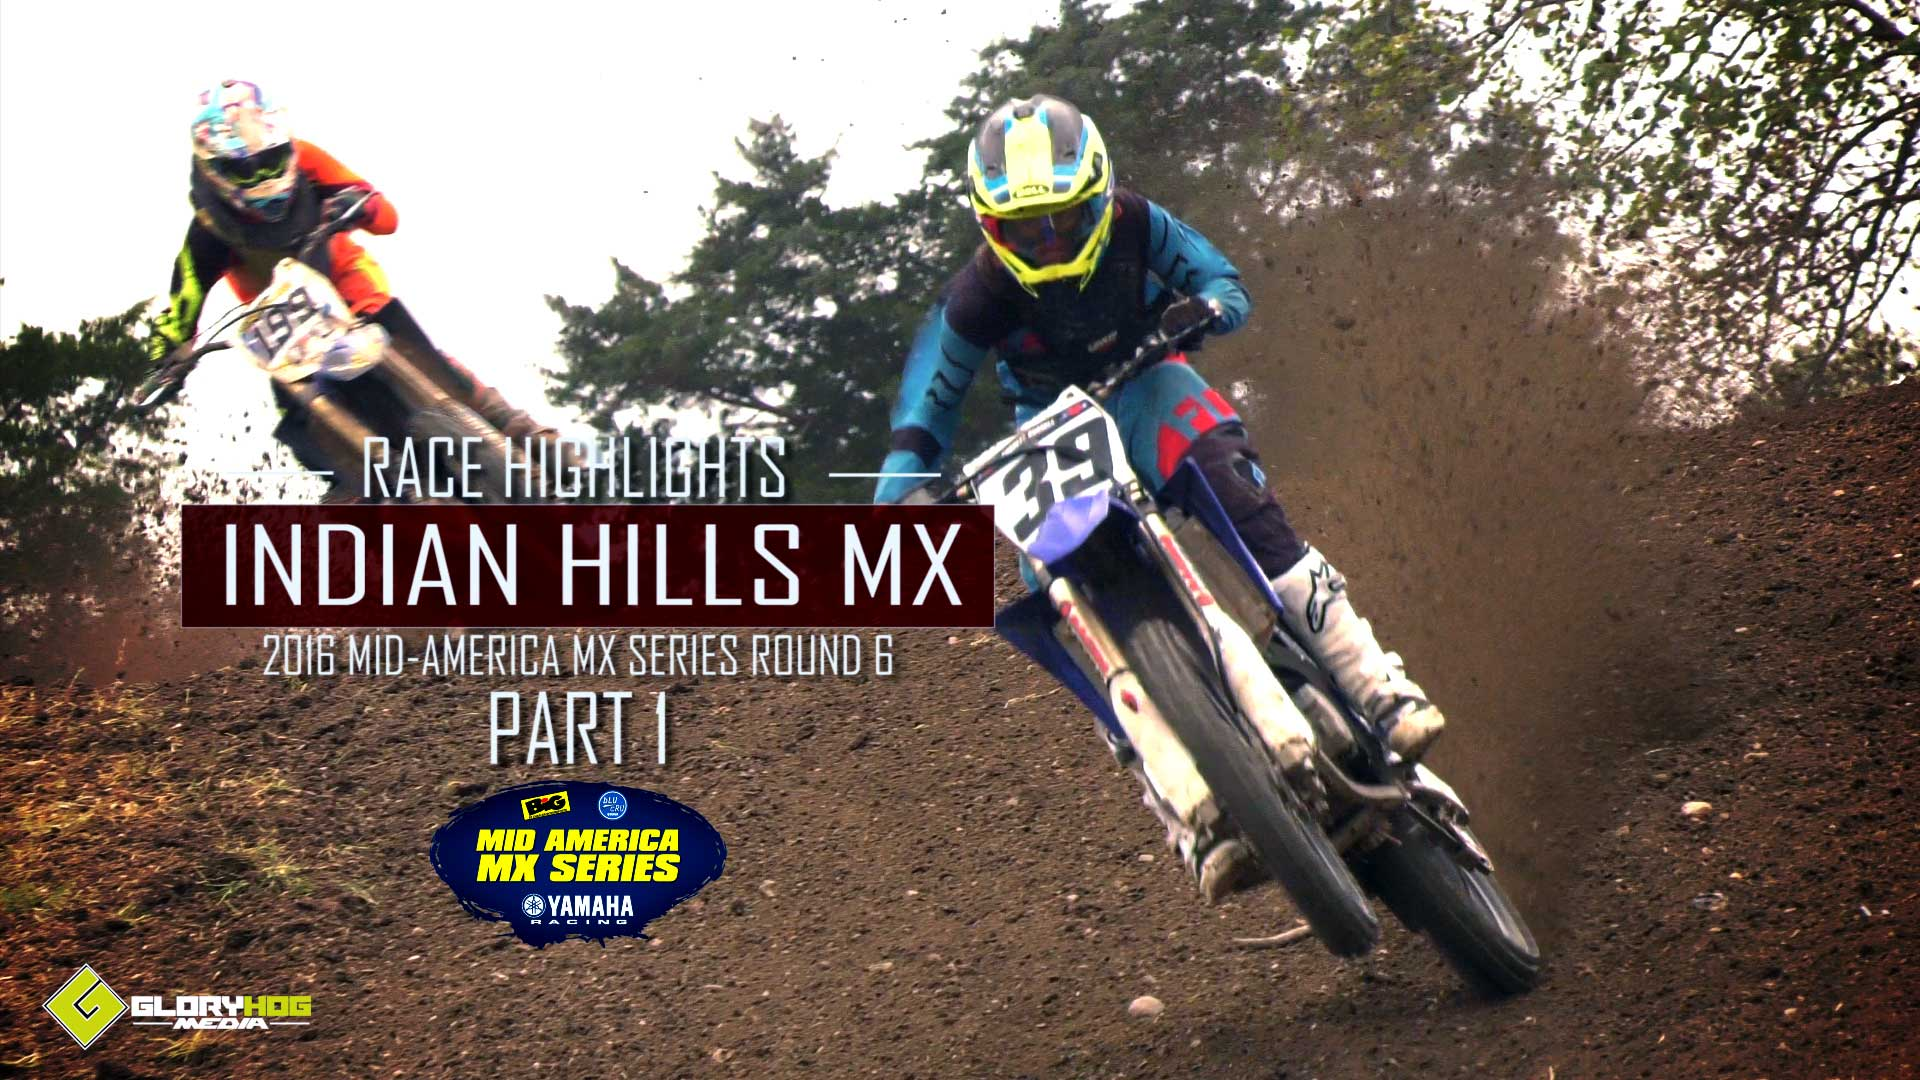 2016 Indian Hills MX MAMS Round 6 Part 1 - Glory Hog Media